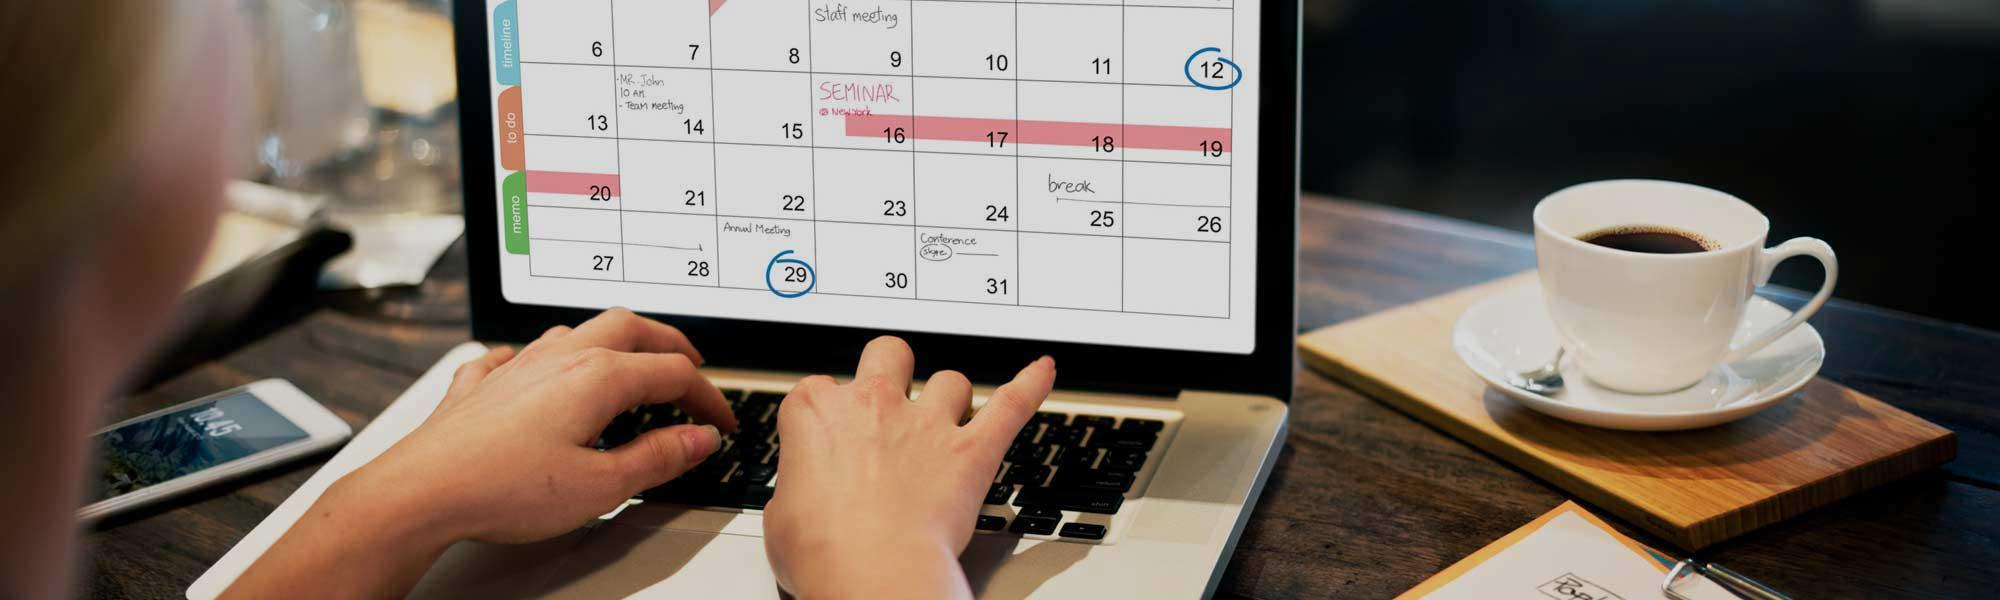 Calendar of events on a laptop